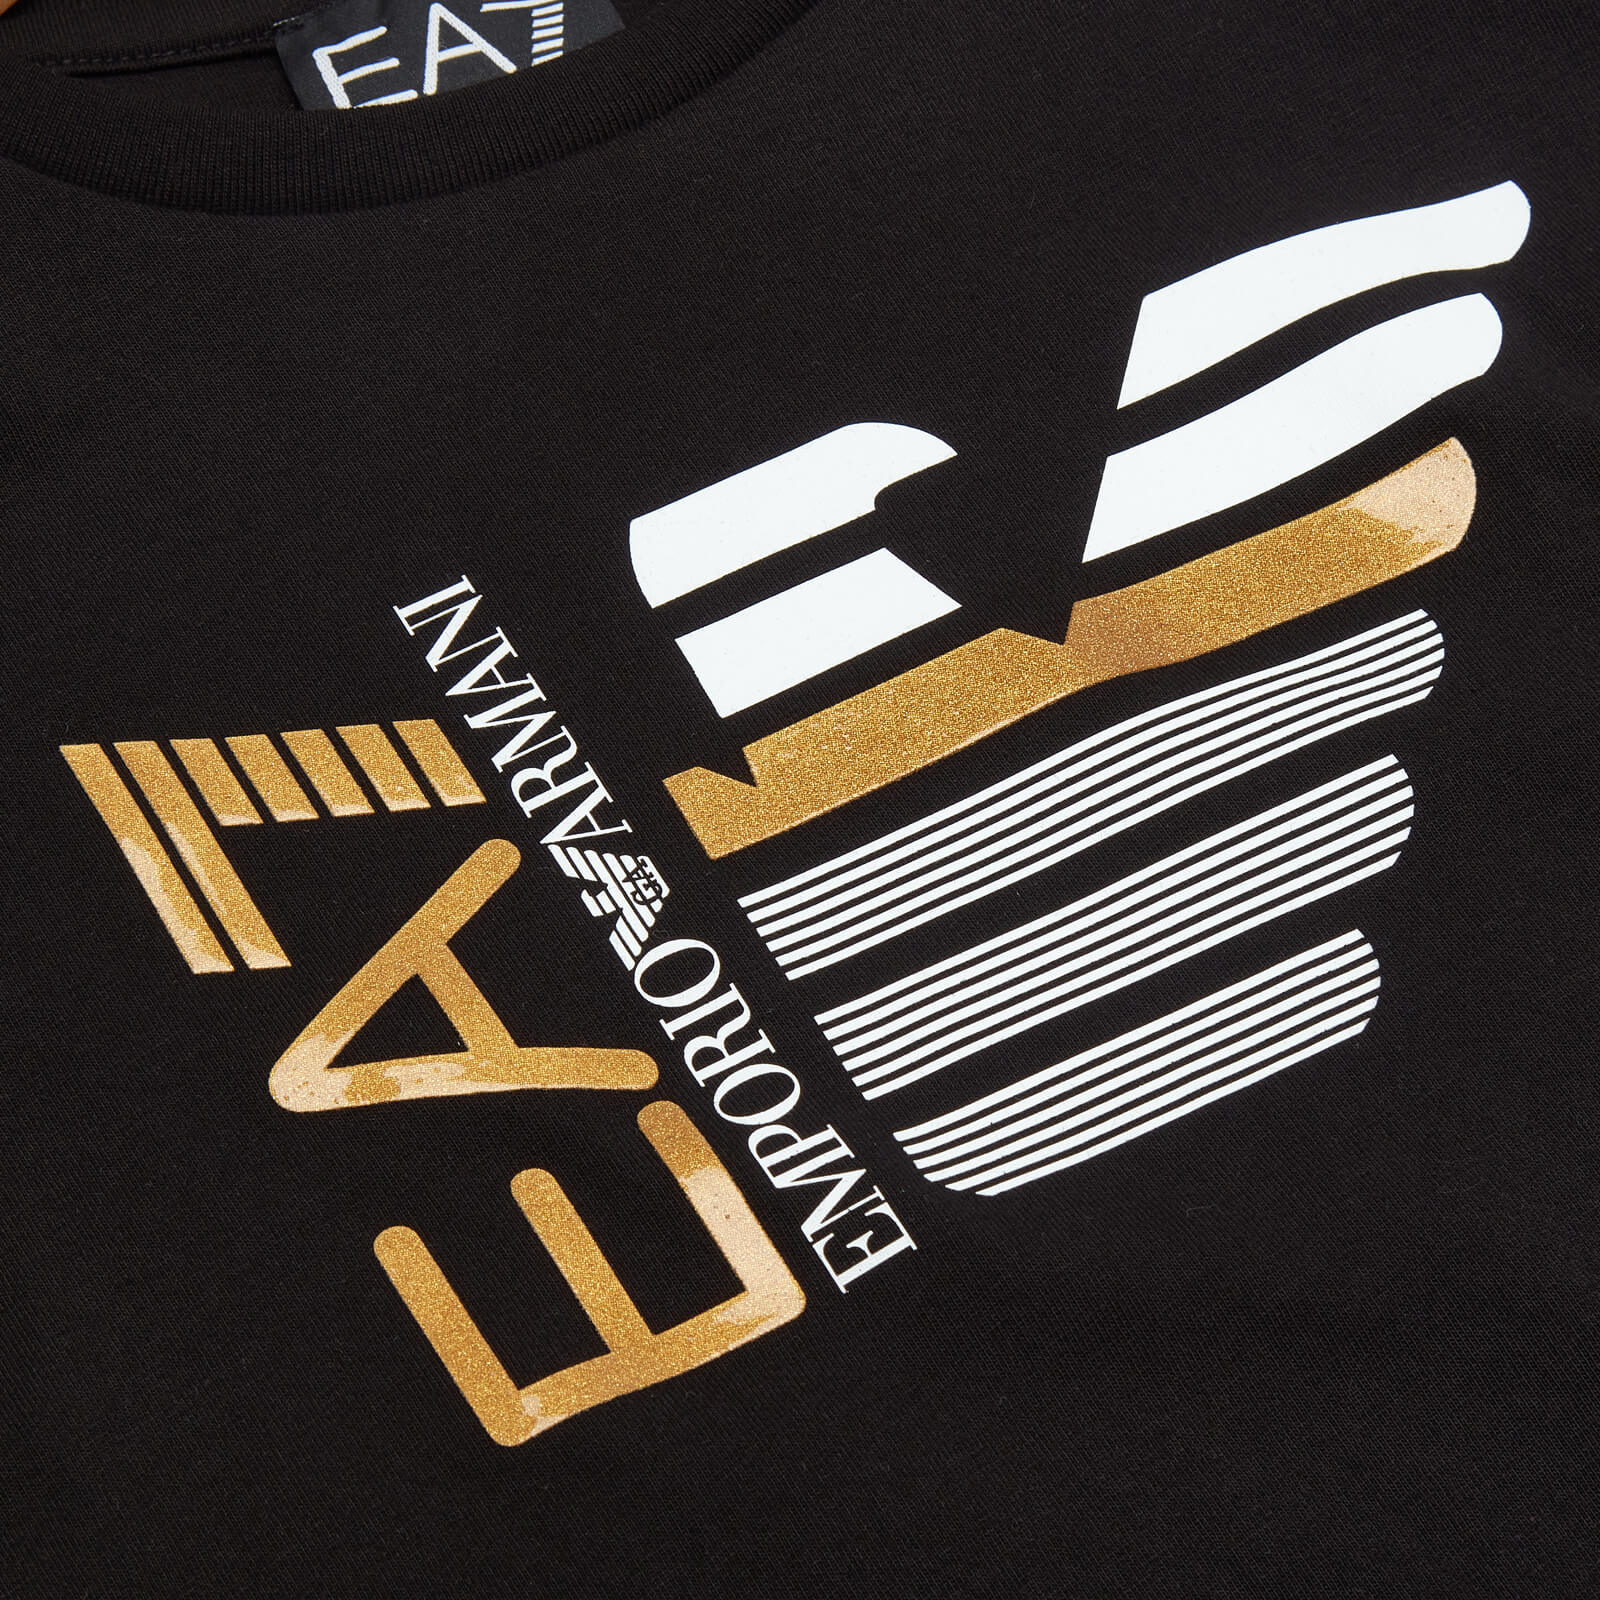 Ea7 Boys' Capsule Collection T-Shirt - Black - 4 Years